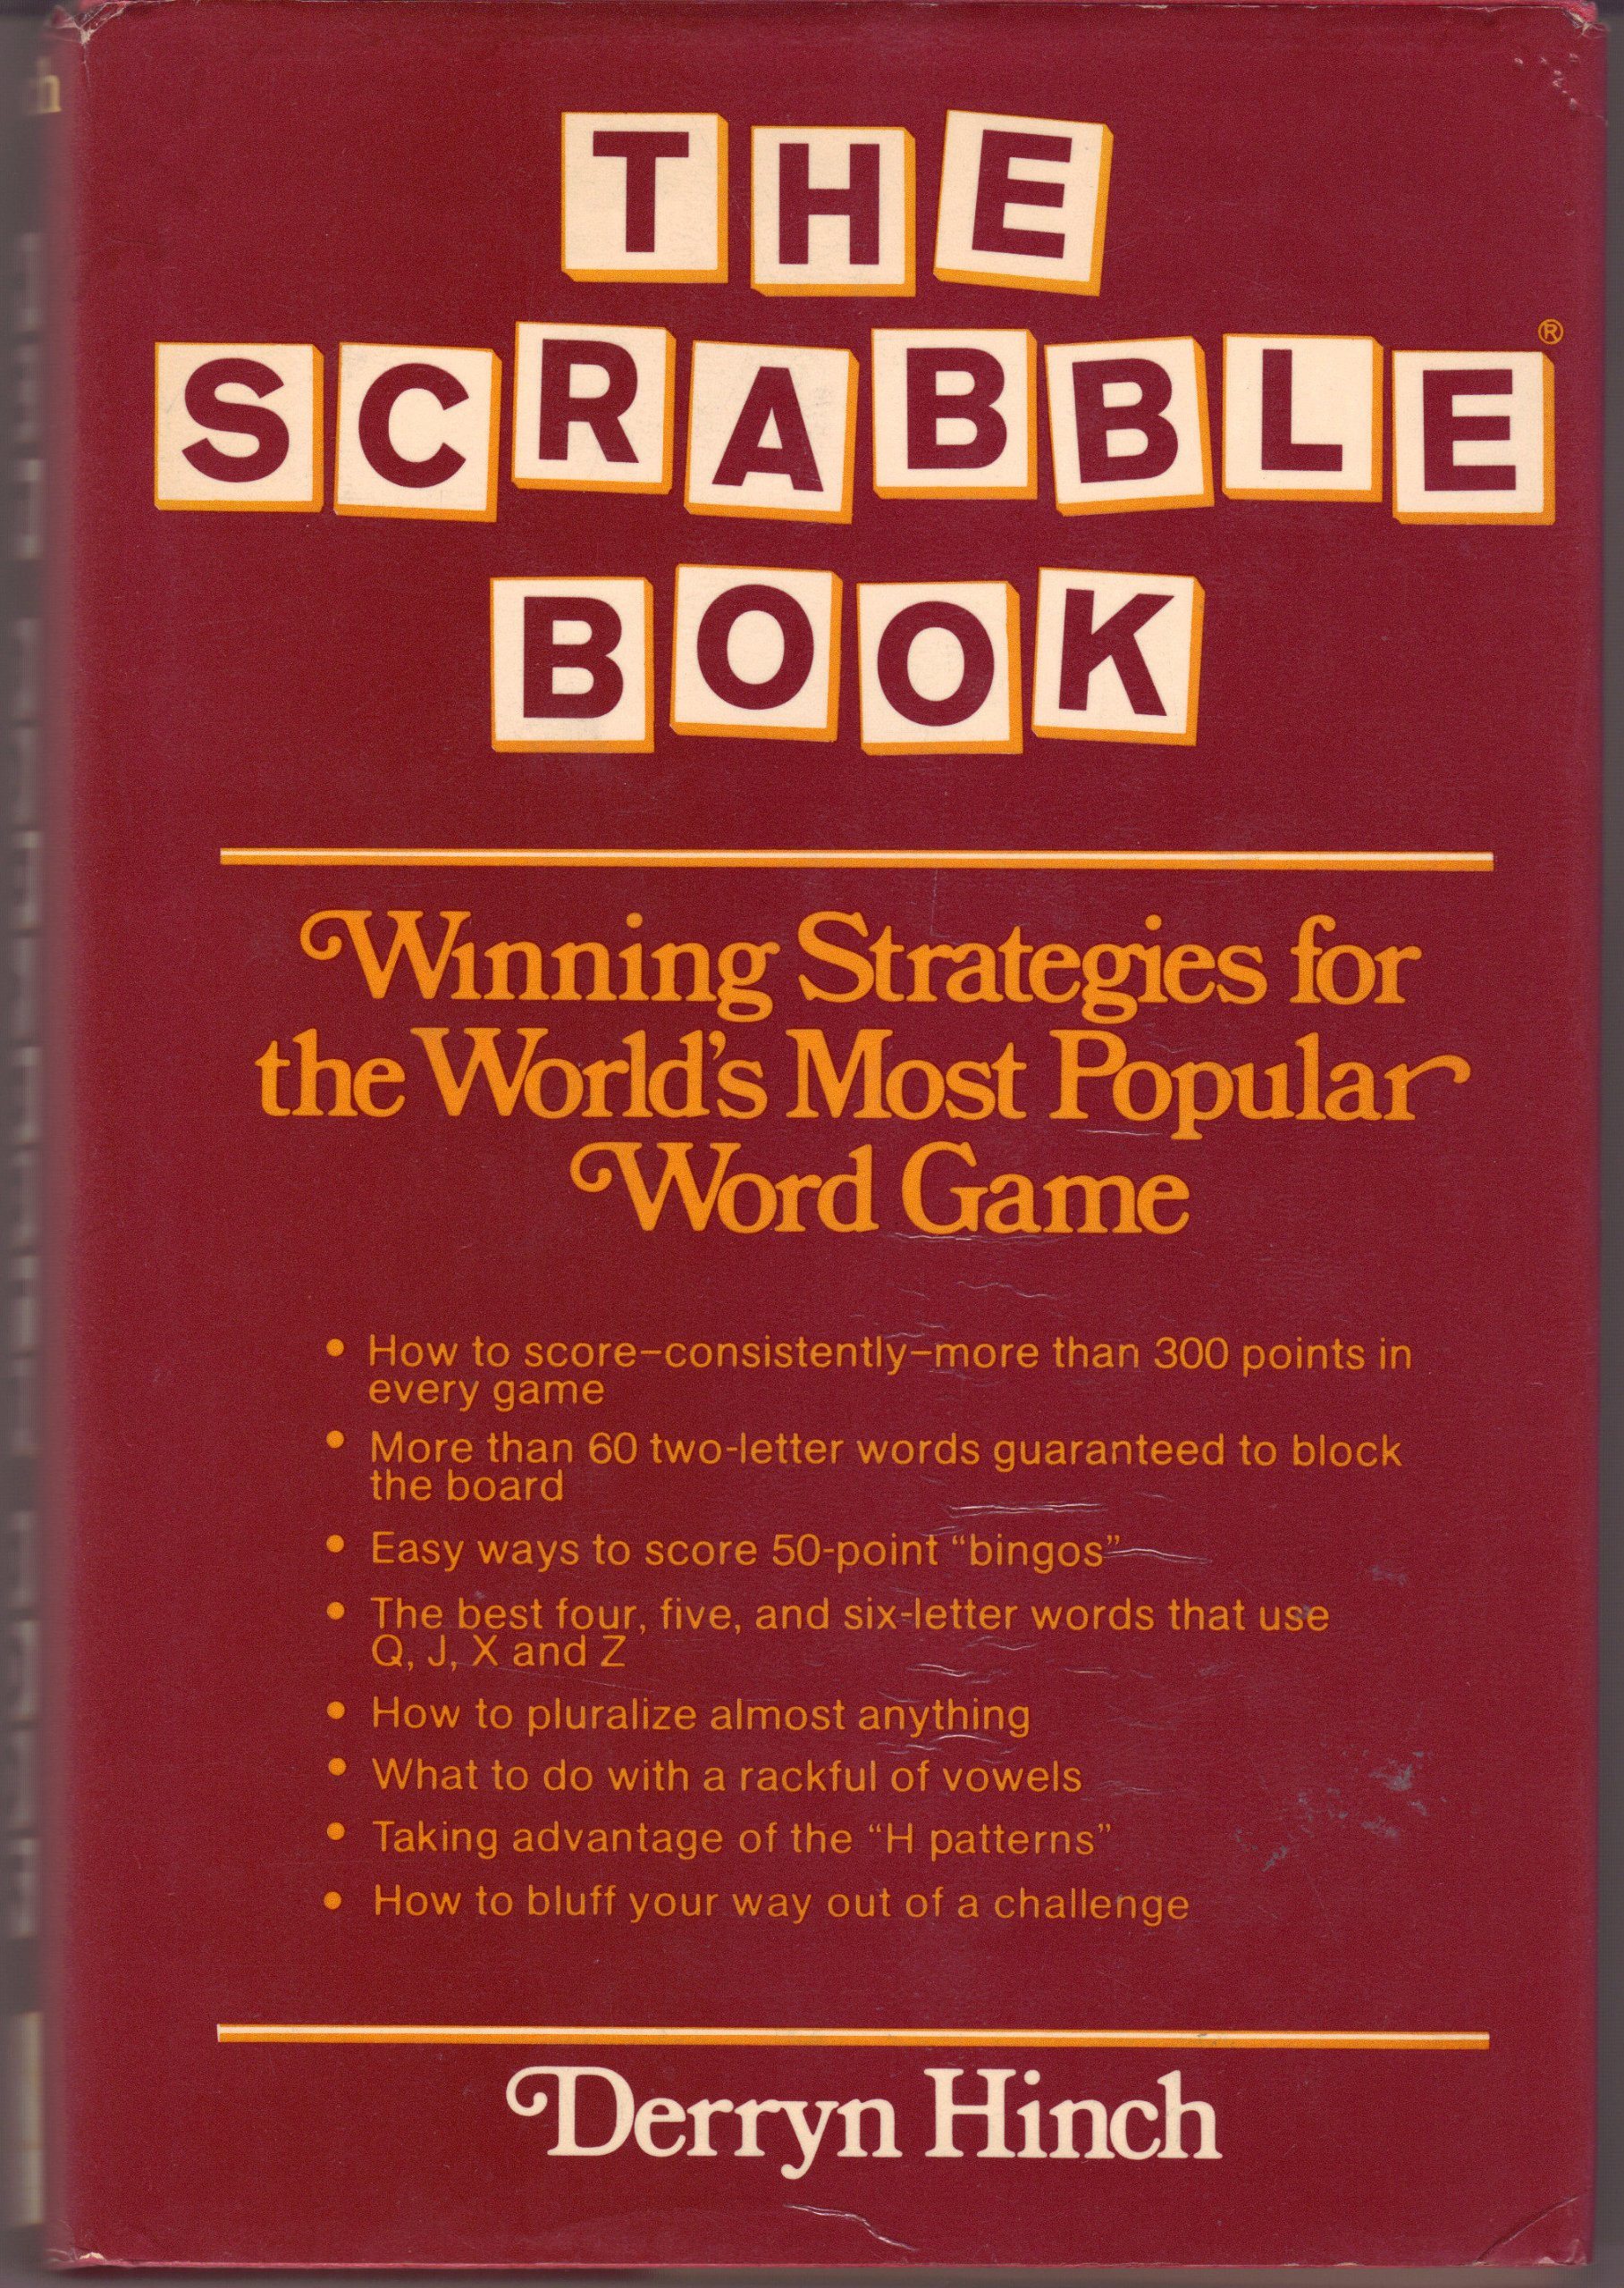 The Scrabble Book Derryn Hinch 9780884051367 Amazon Books